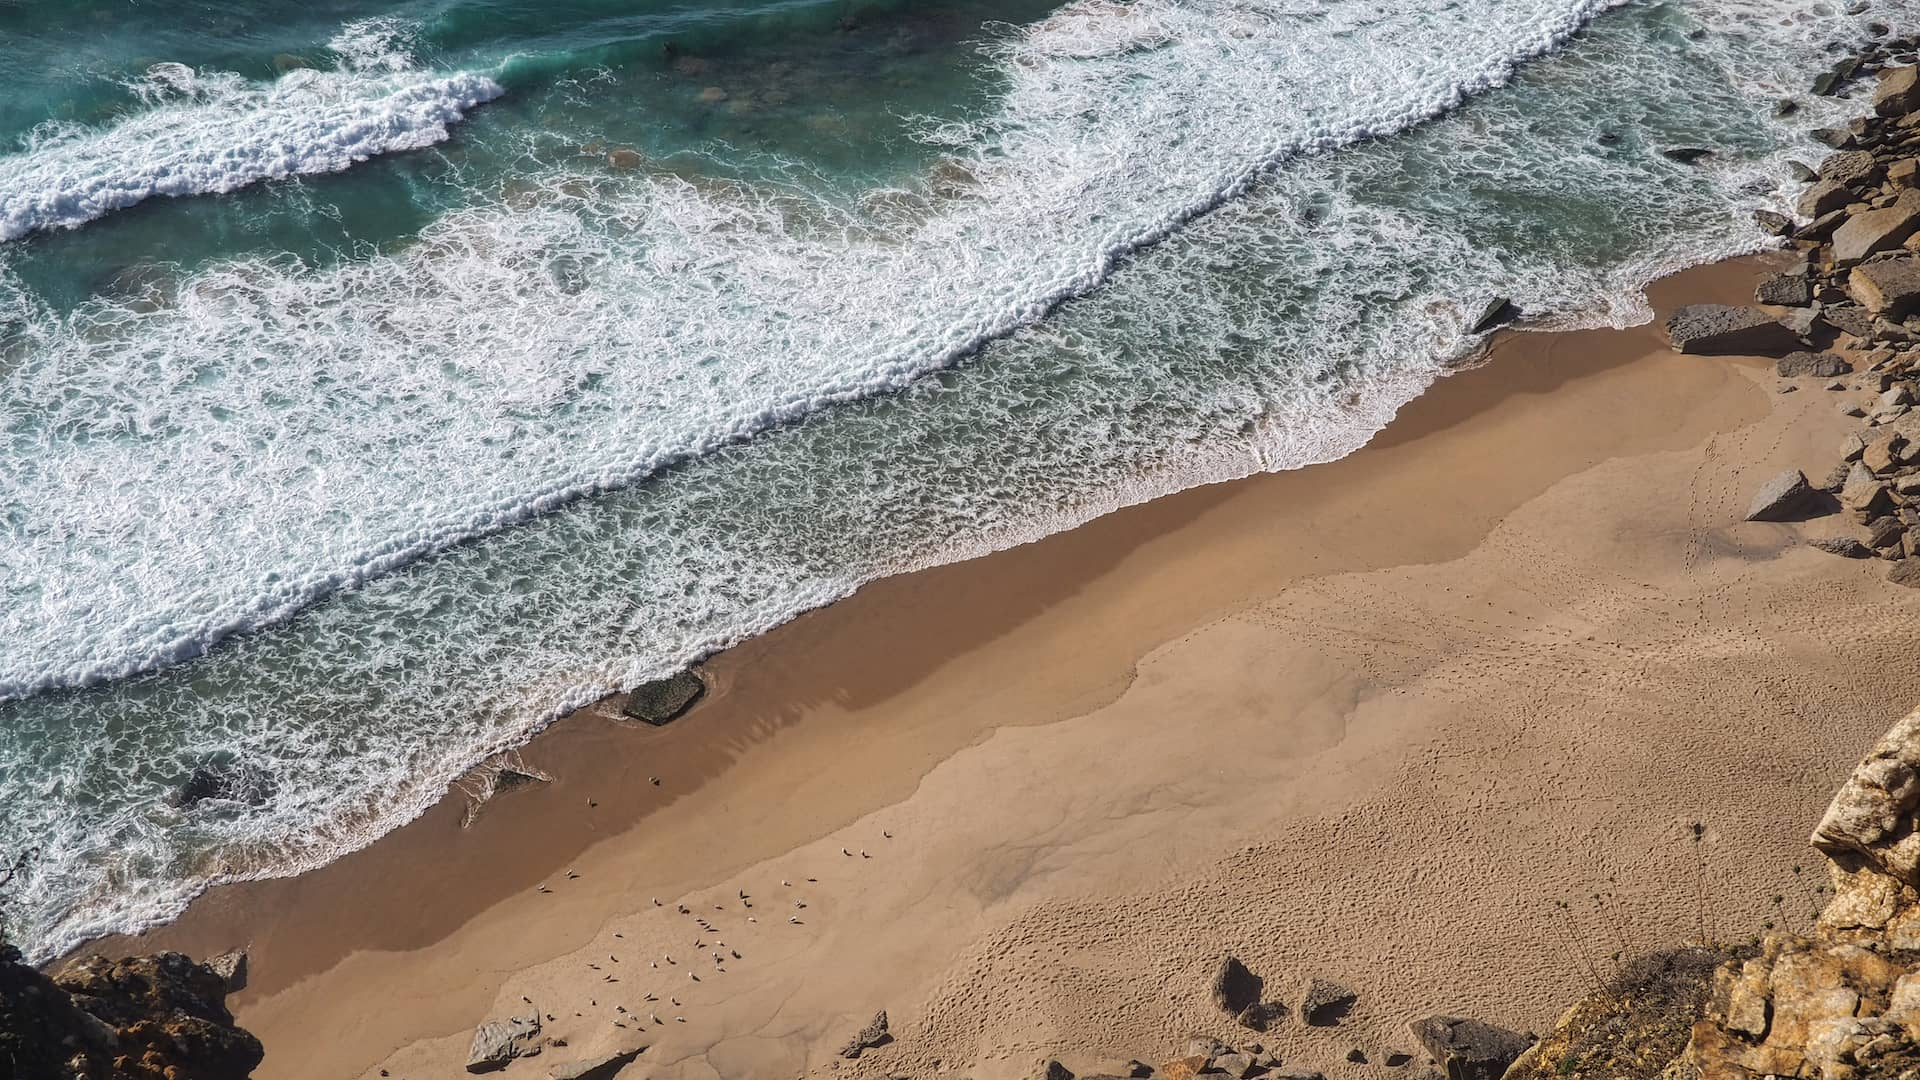 Aerial view of waves crashing on to a golden beach